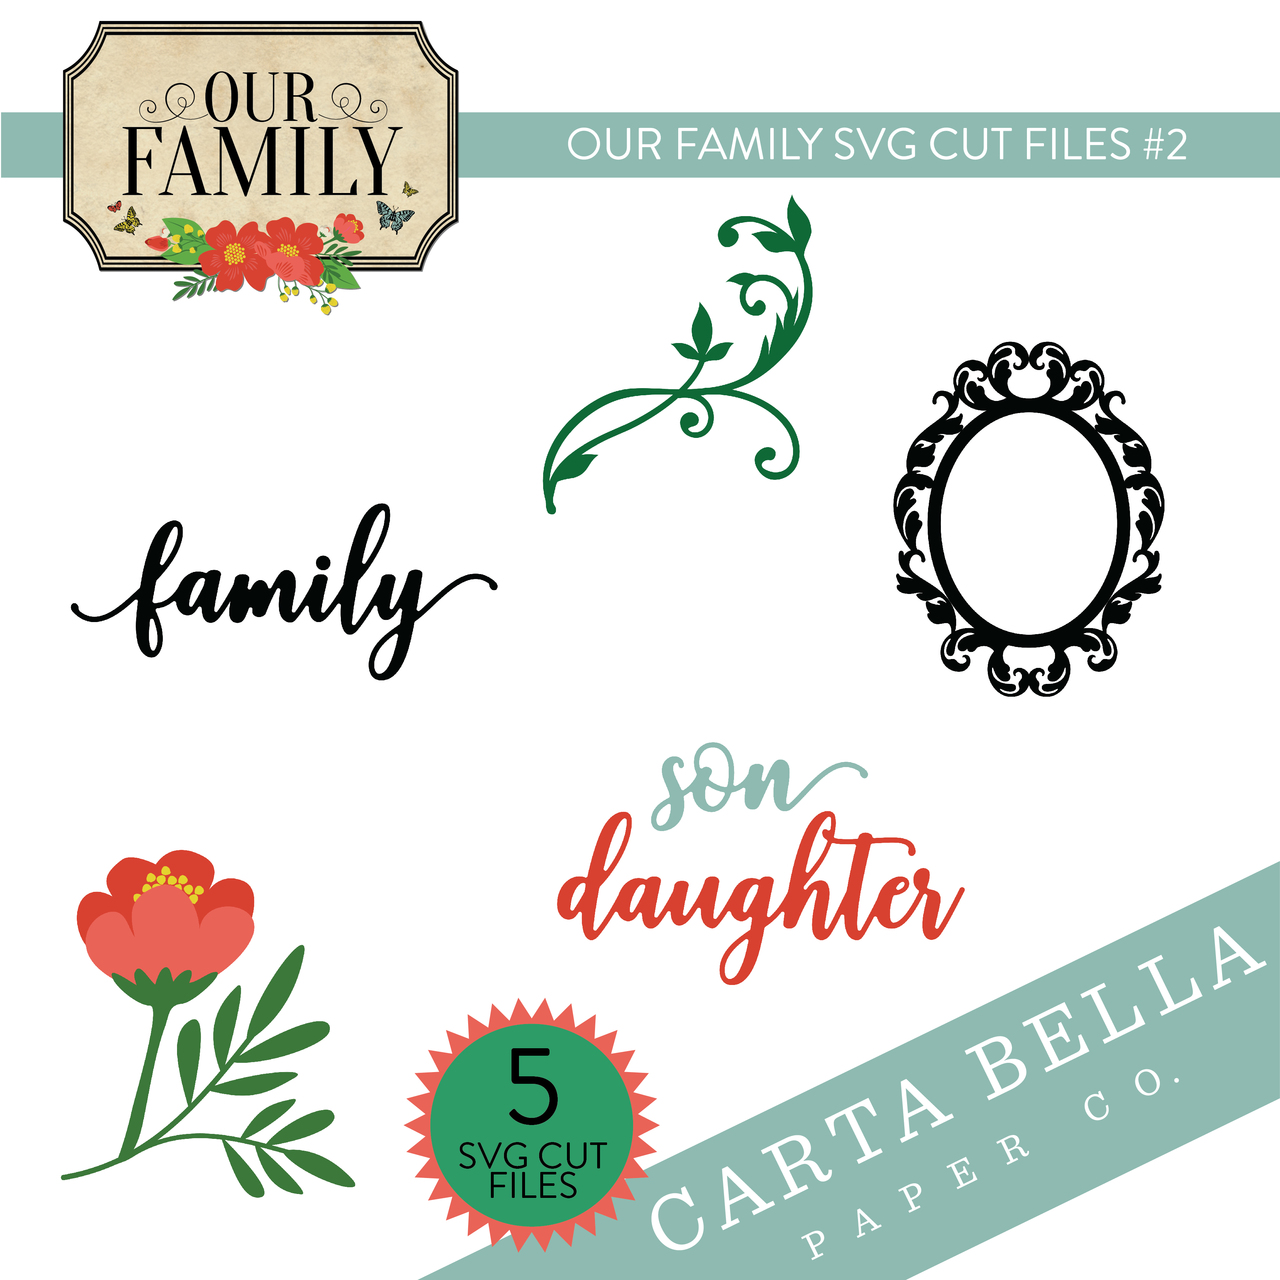 Our Family SVG Cut Files #2